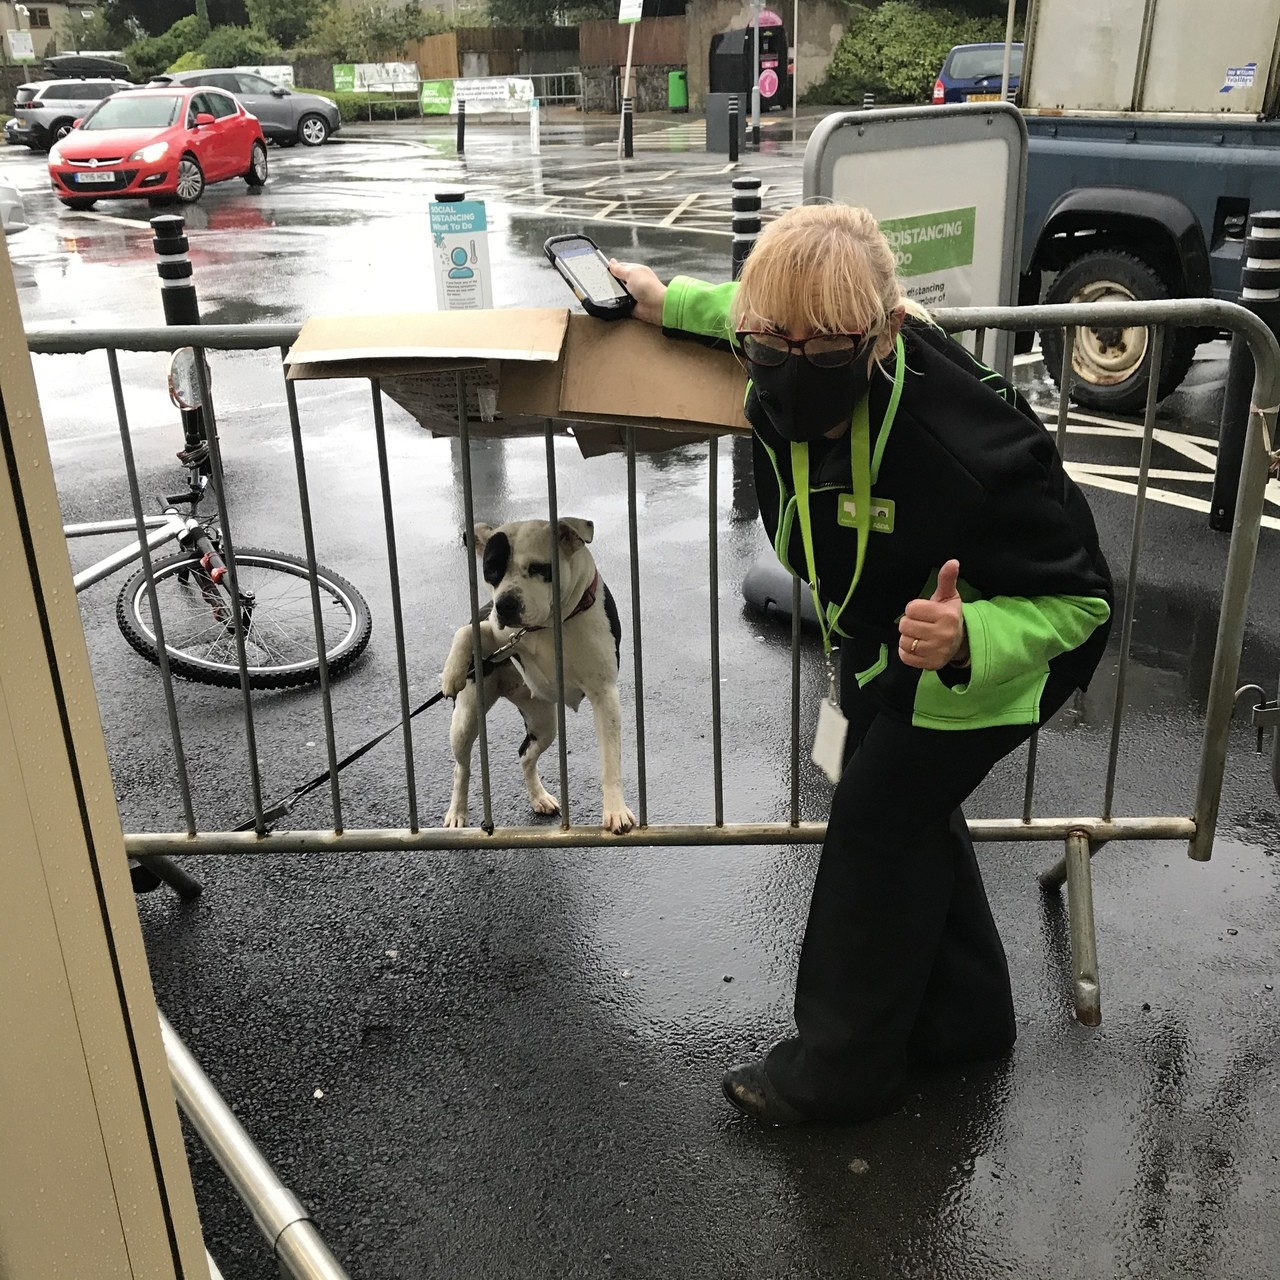 Torrential rain ...but an Asda flower box saves the day for Elsie | Asda Pwllheli